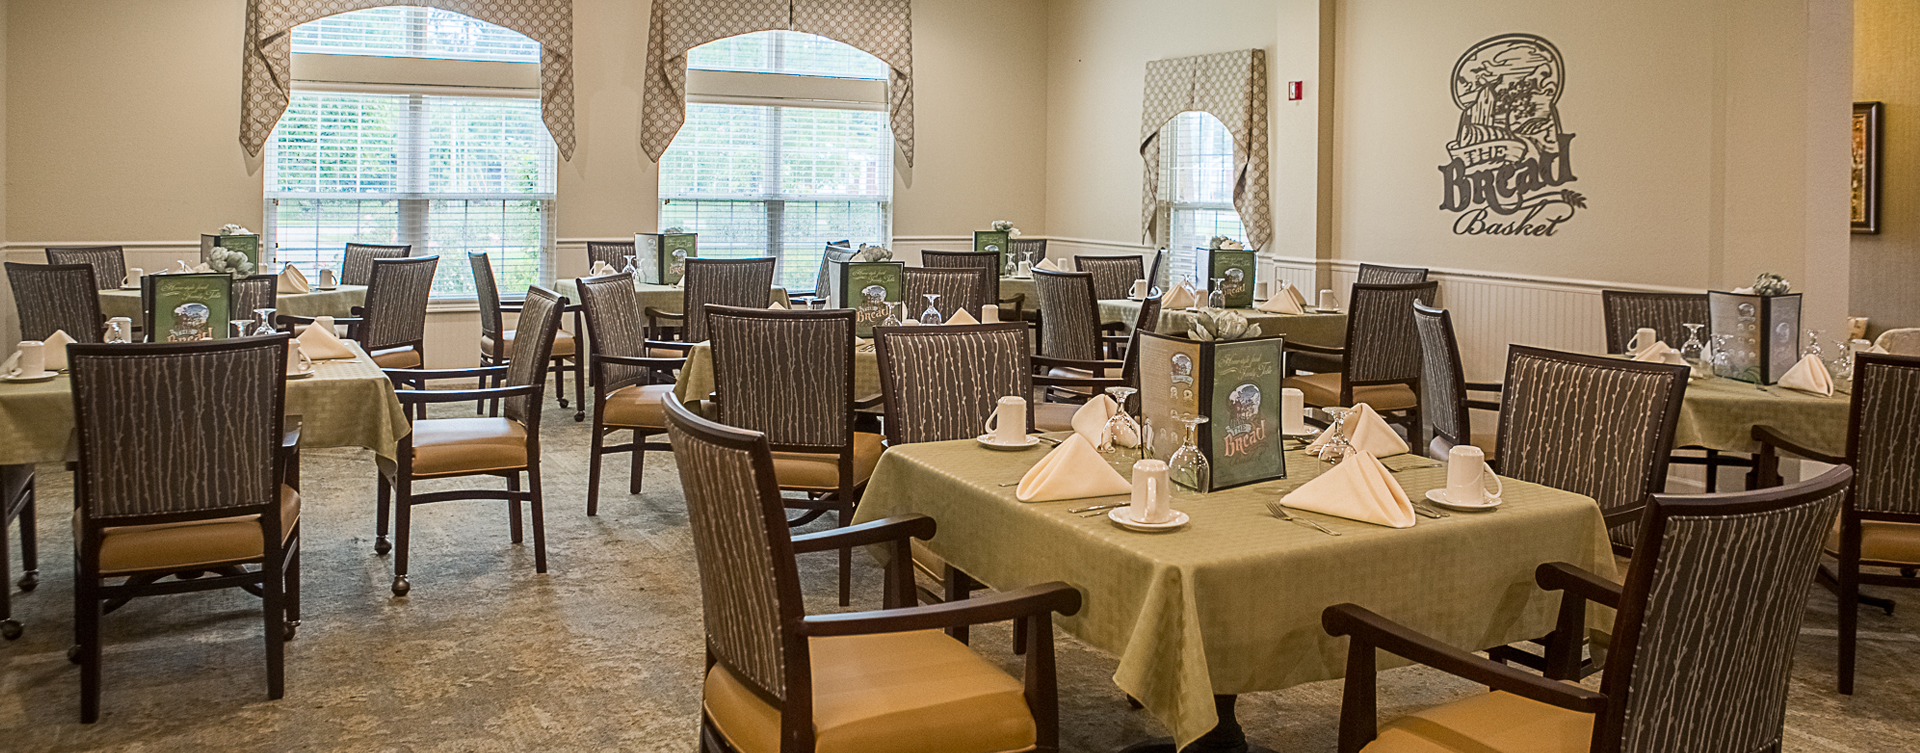 Enjoy homestyle food with made-from-scratch recipes in our dining room at Bickford of Clinton